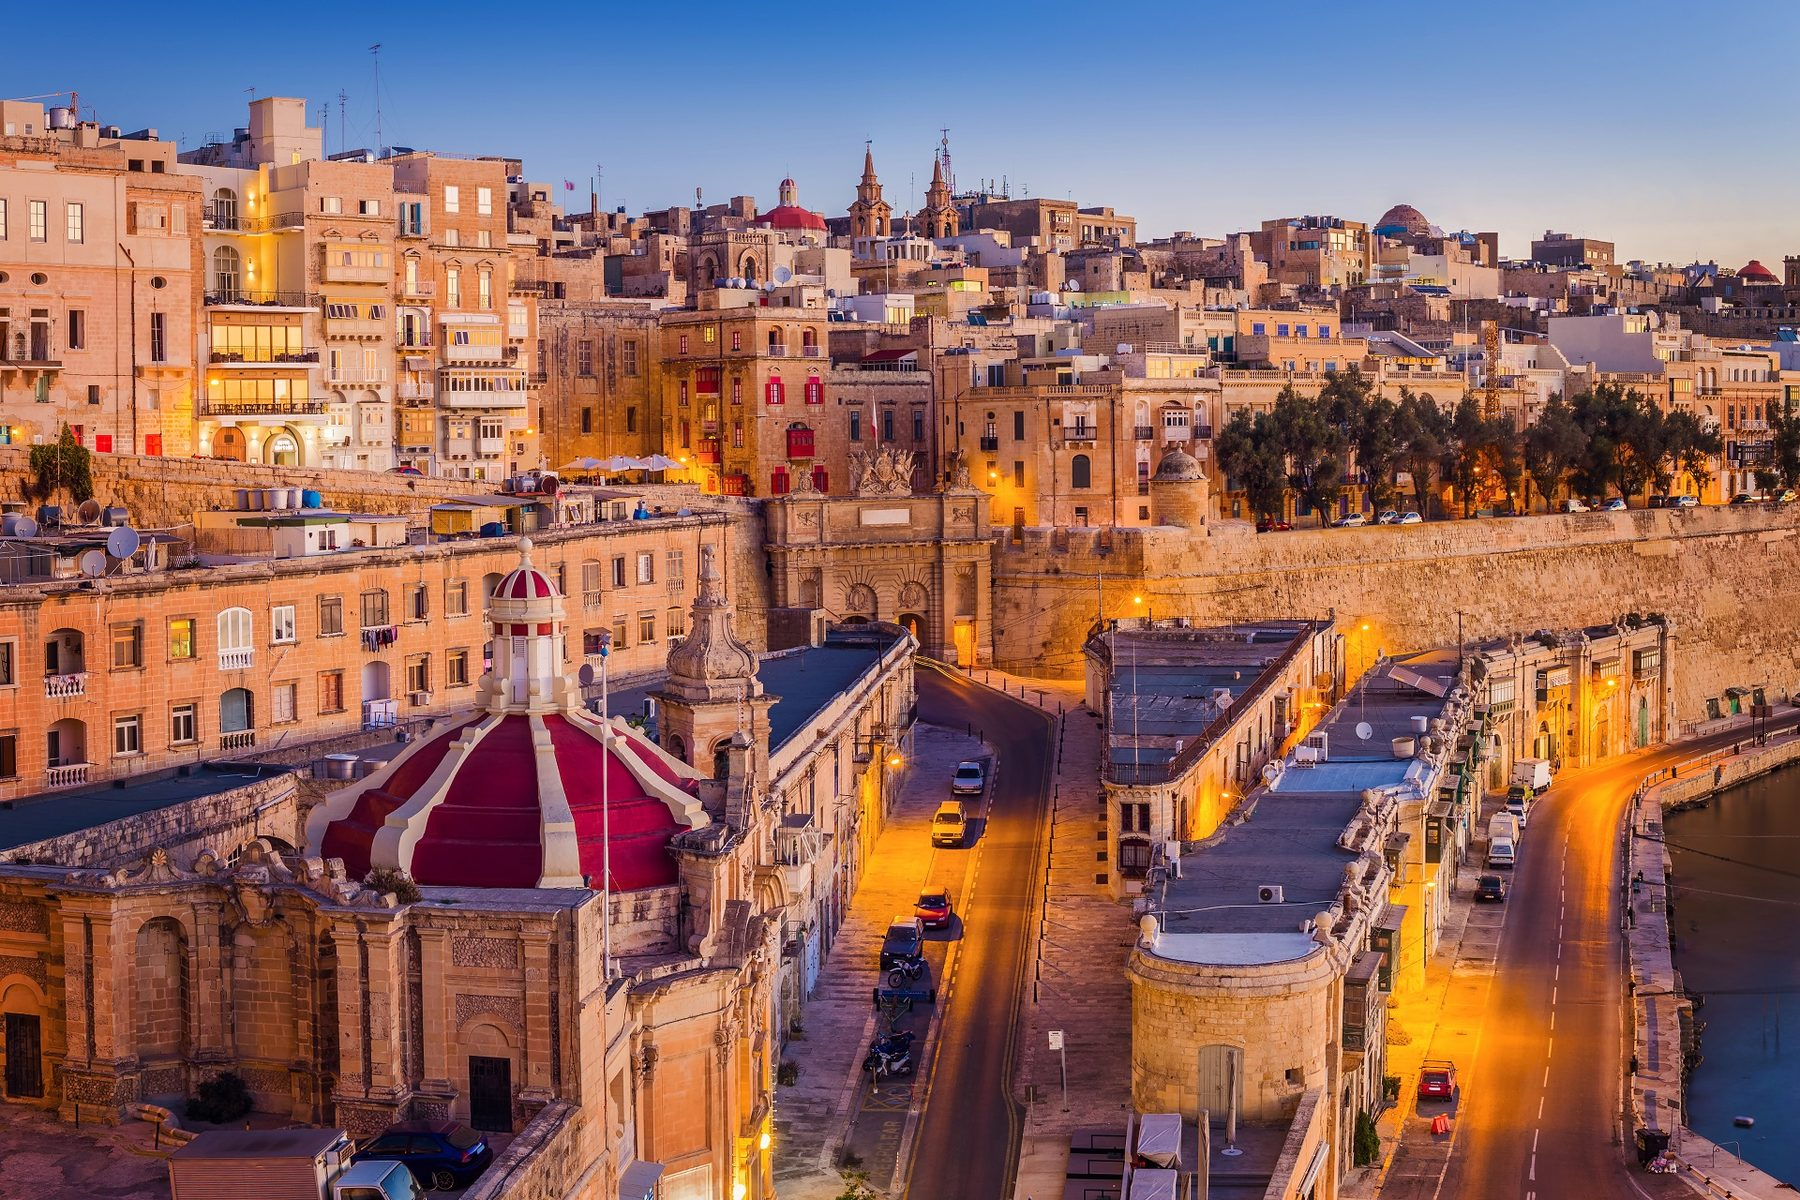 Malta and Gozo: Islands of the Knights